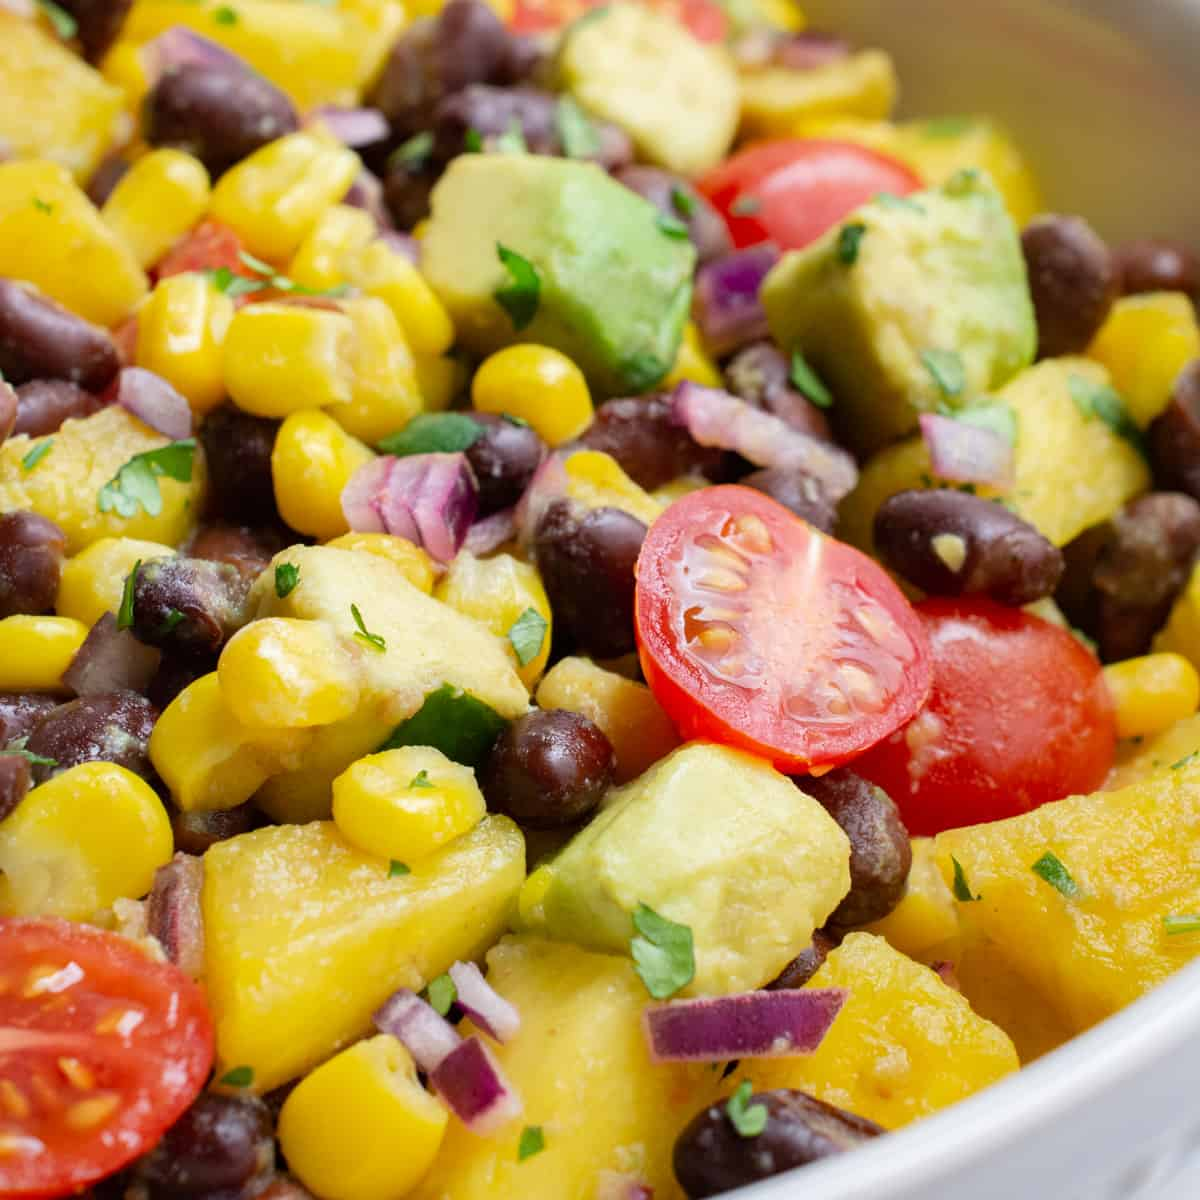 A bowl of fruit salad consisting of grape tomatoes, pineapple, avocado, red onion, corn, black beans, and cilantro.